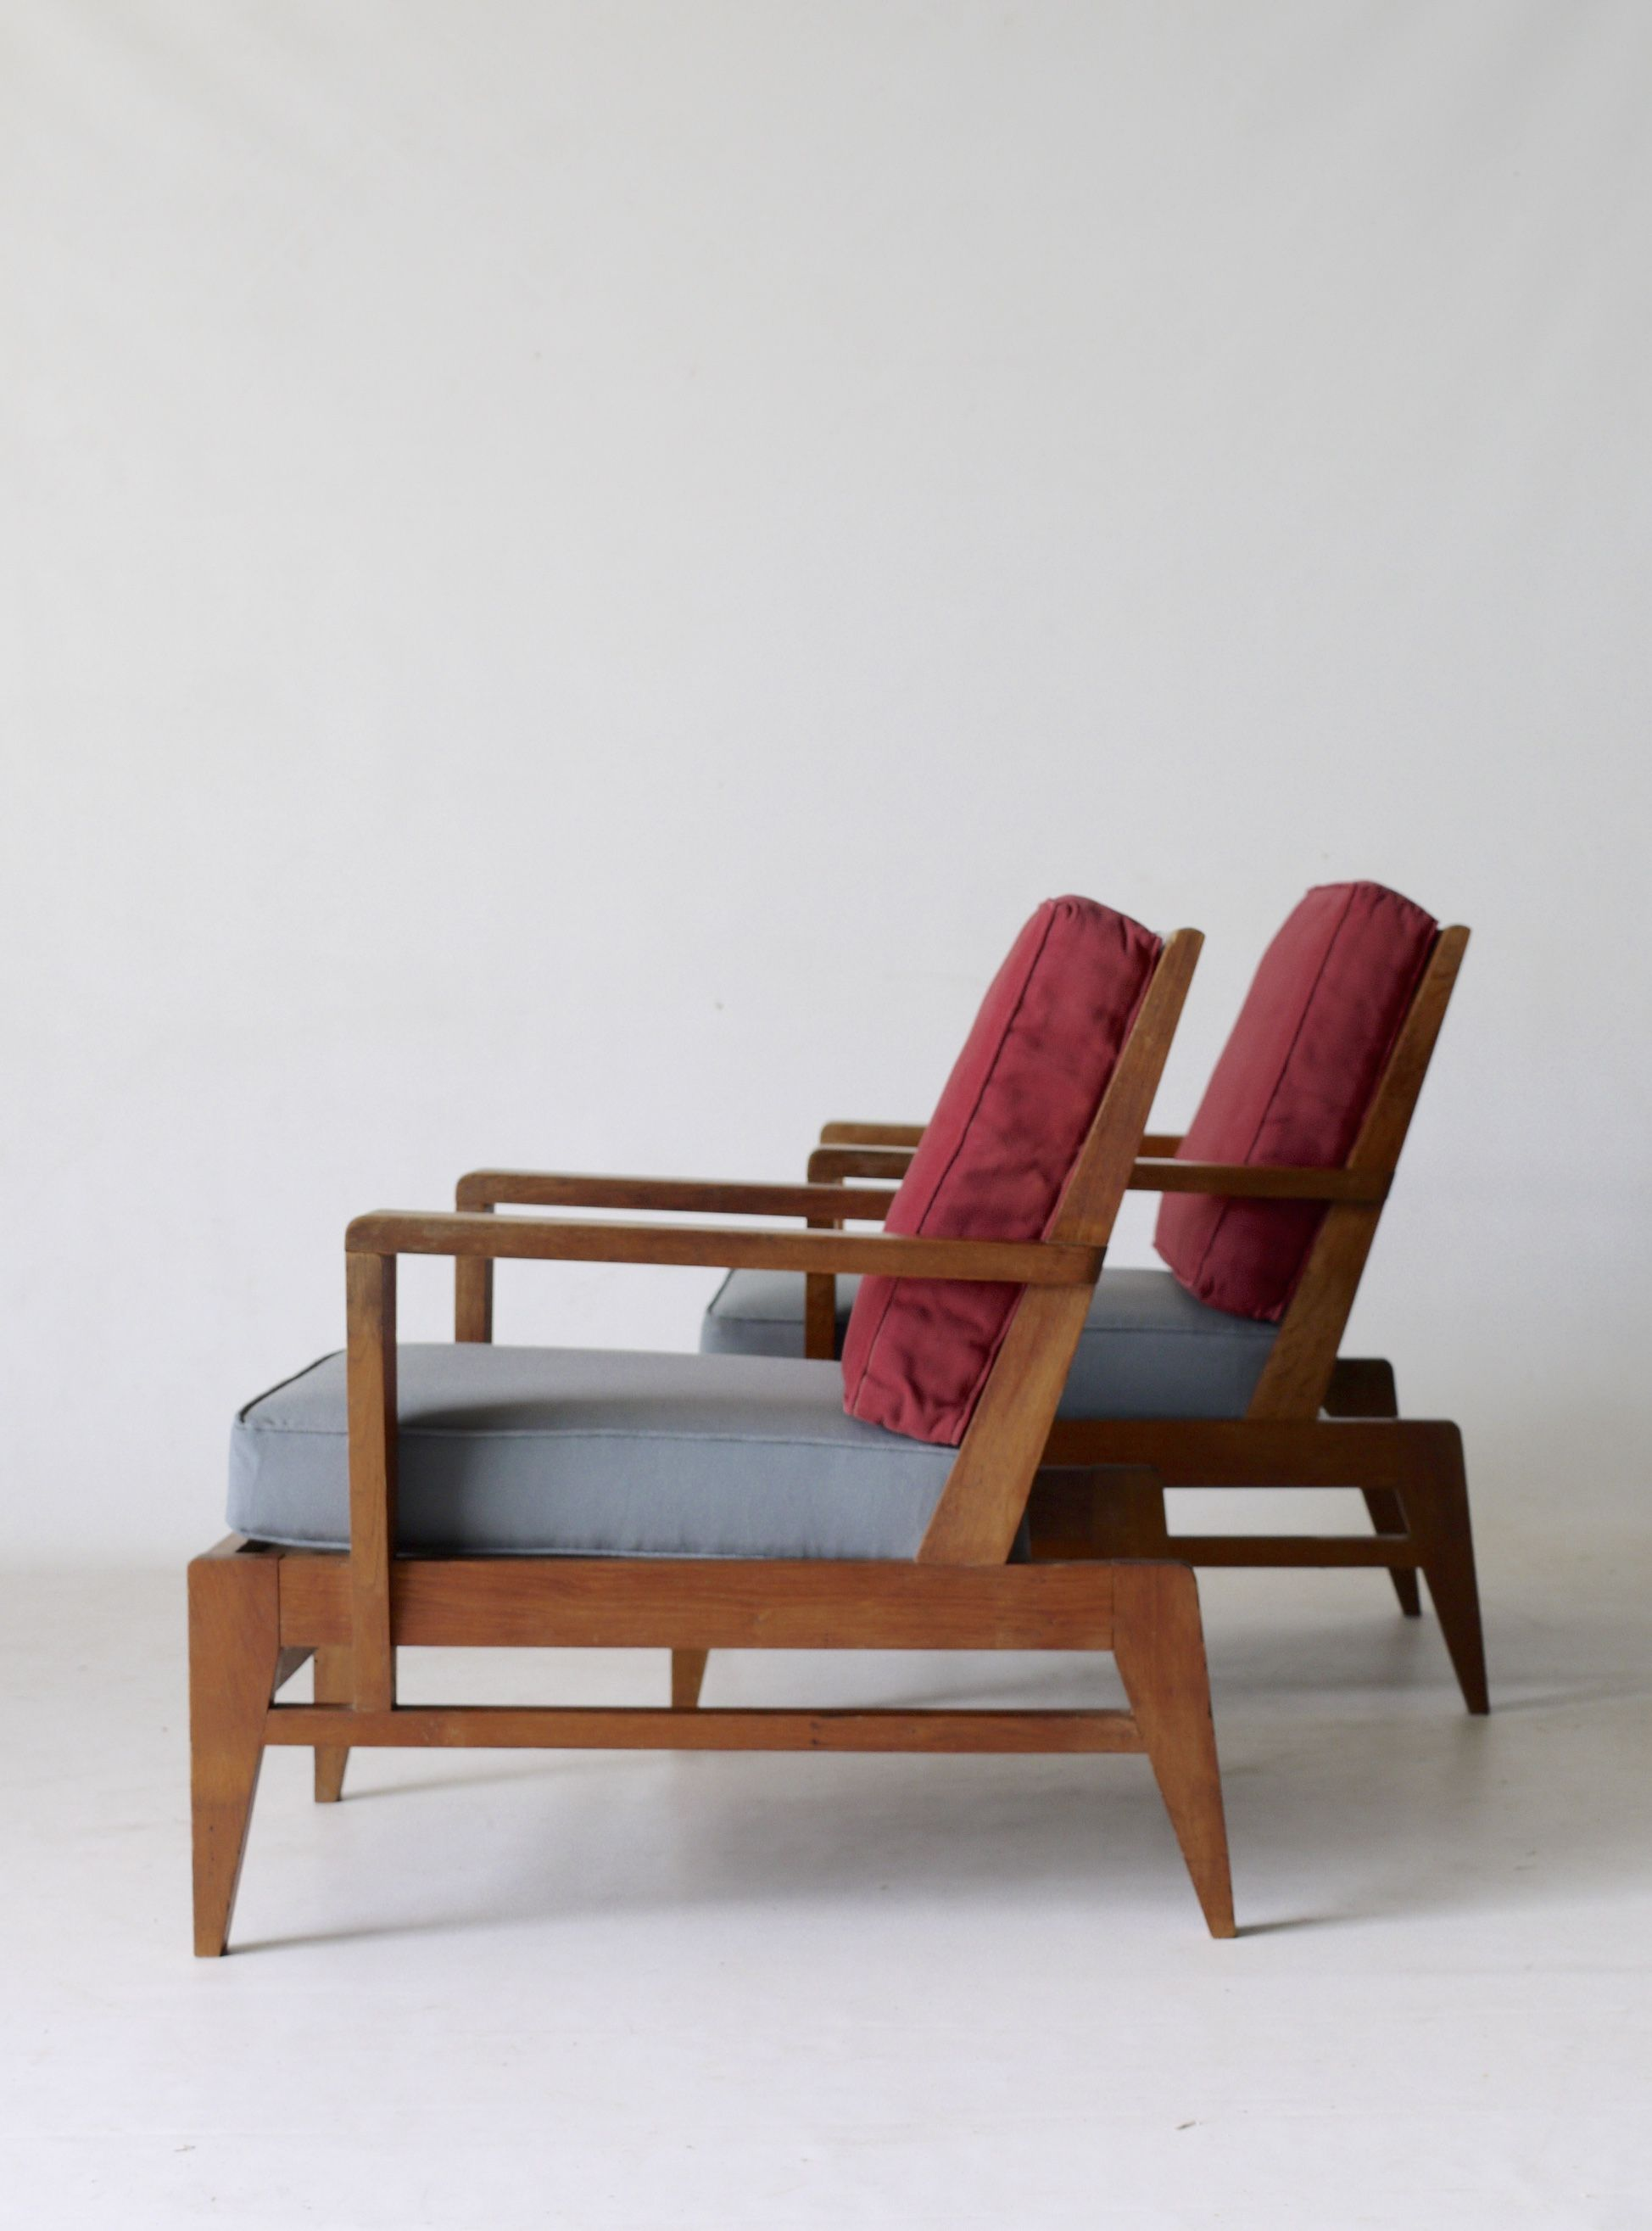 Rene gabriel french modernist oak armchairs 1940s 50s french designers french oak